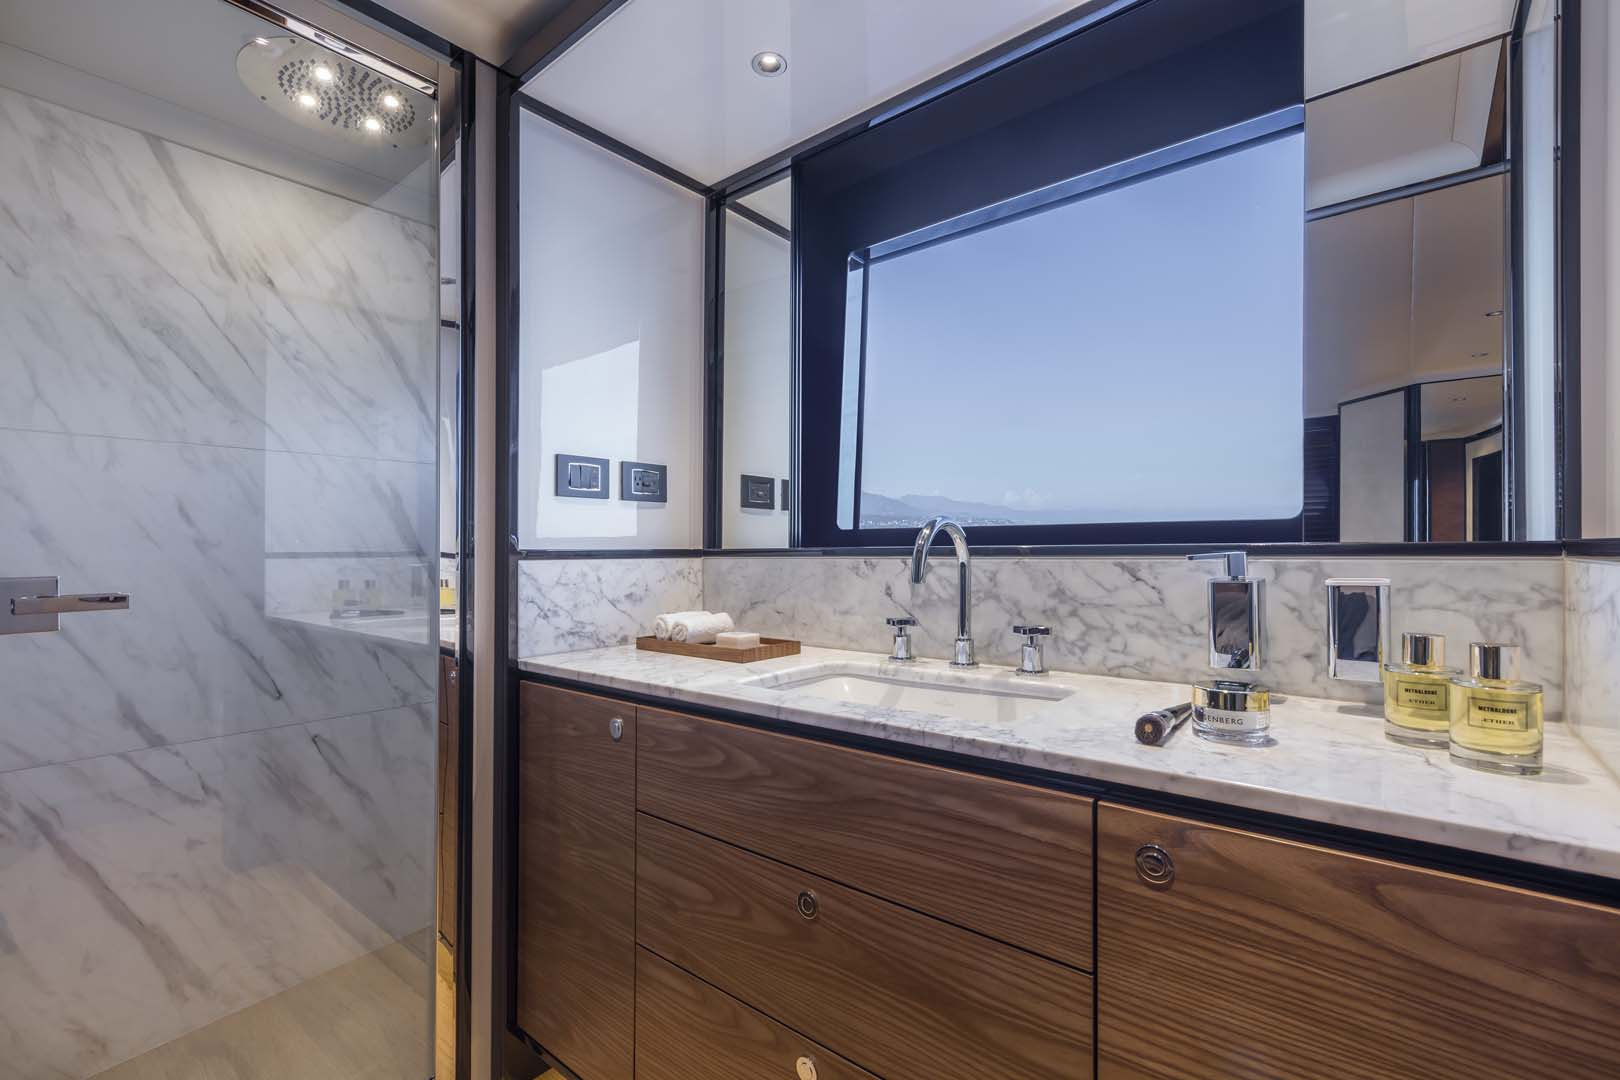 Hullside window on the absolute navetta 68